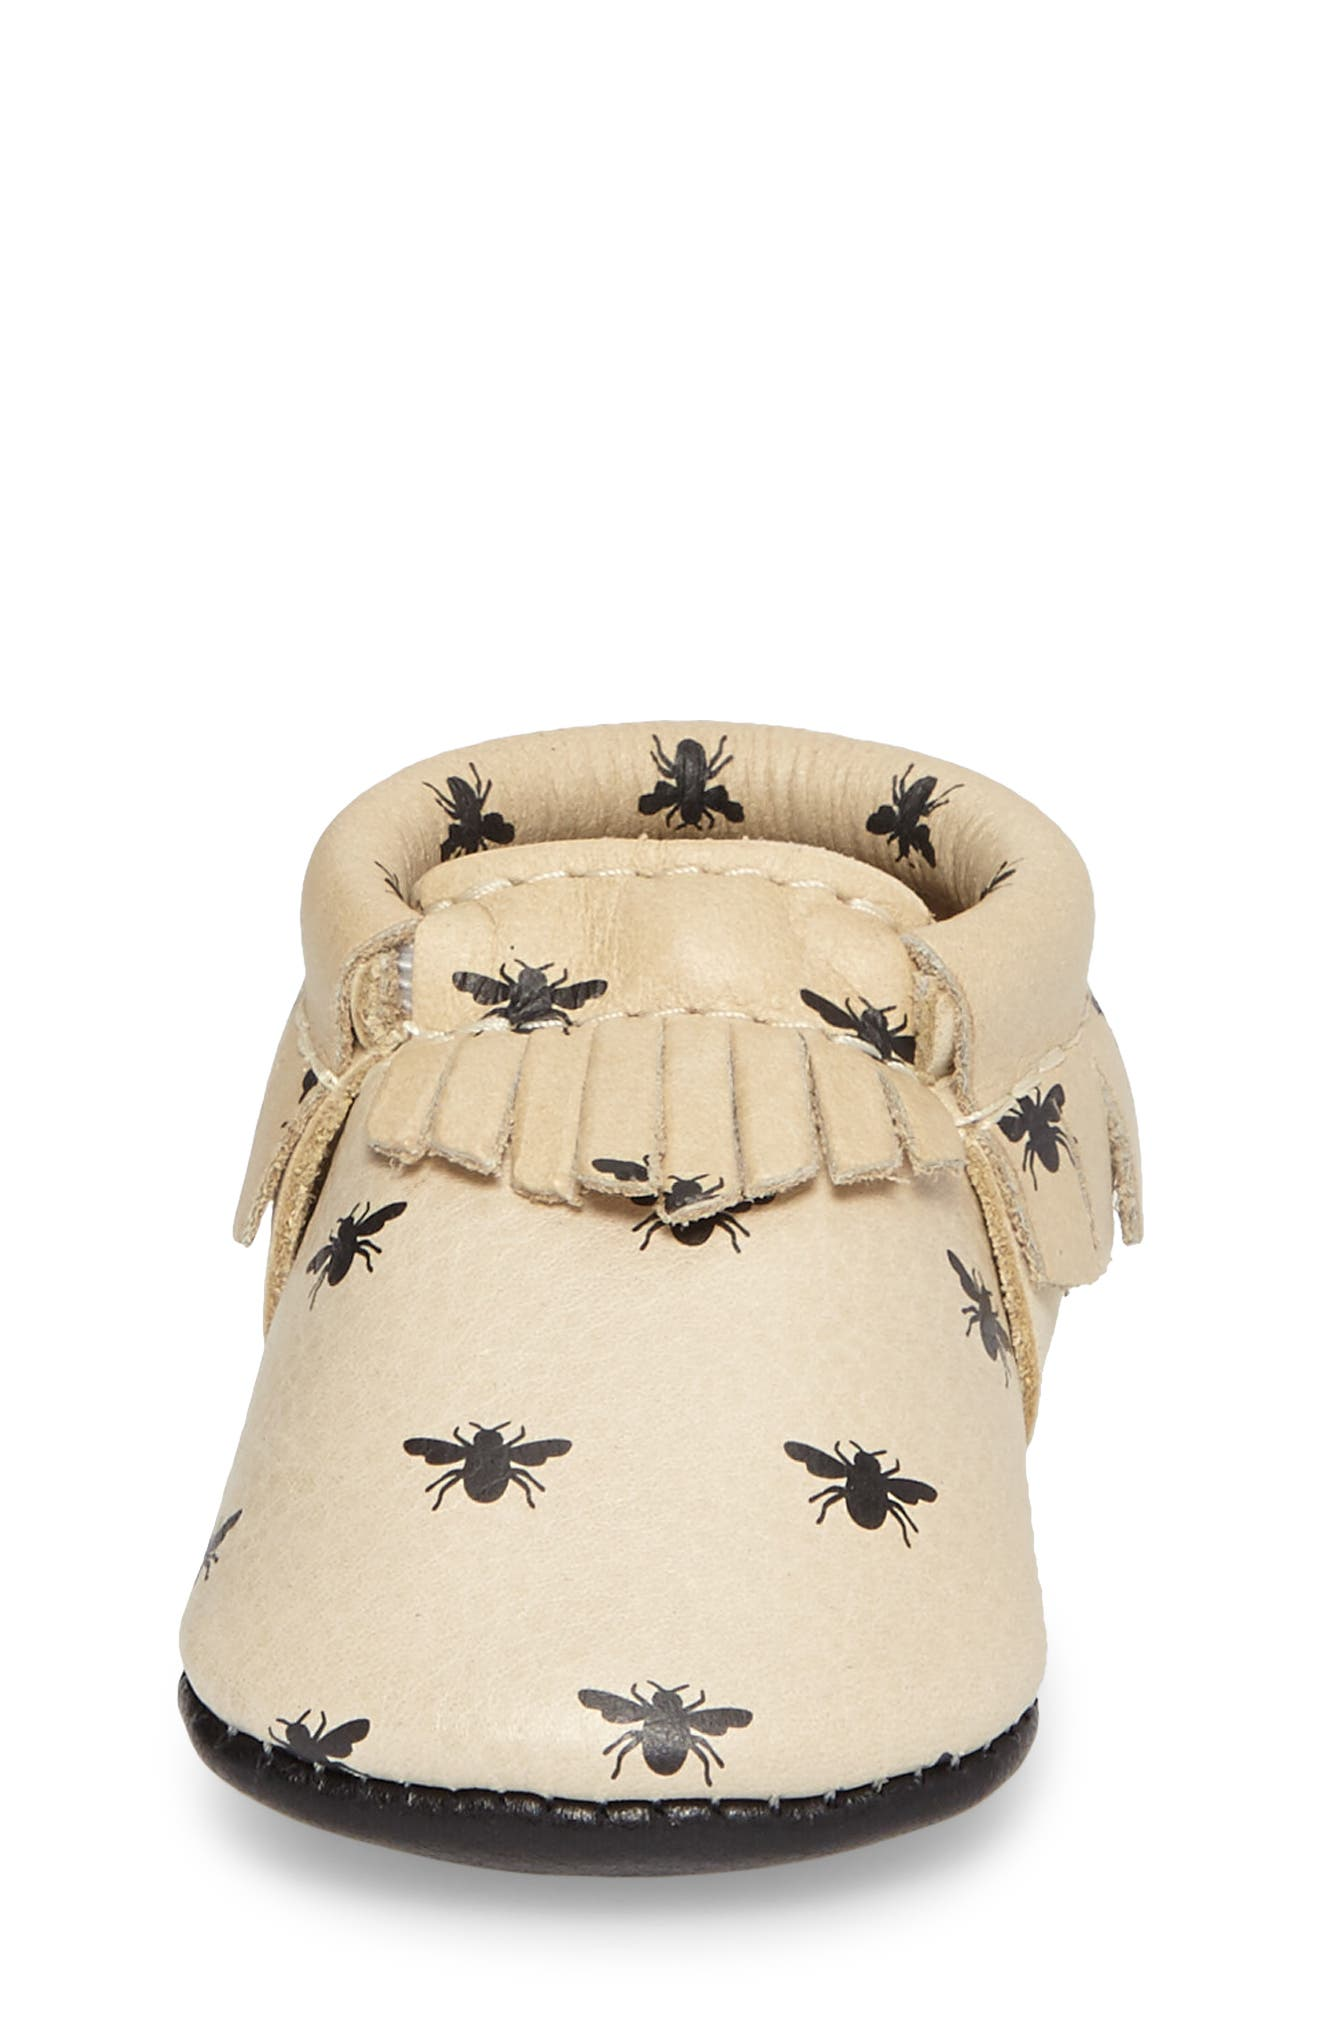 Honeybee Print Moccasin,                             Alternate thumbnail 4, color,                             250